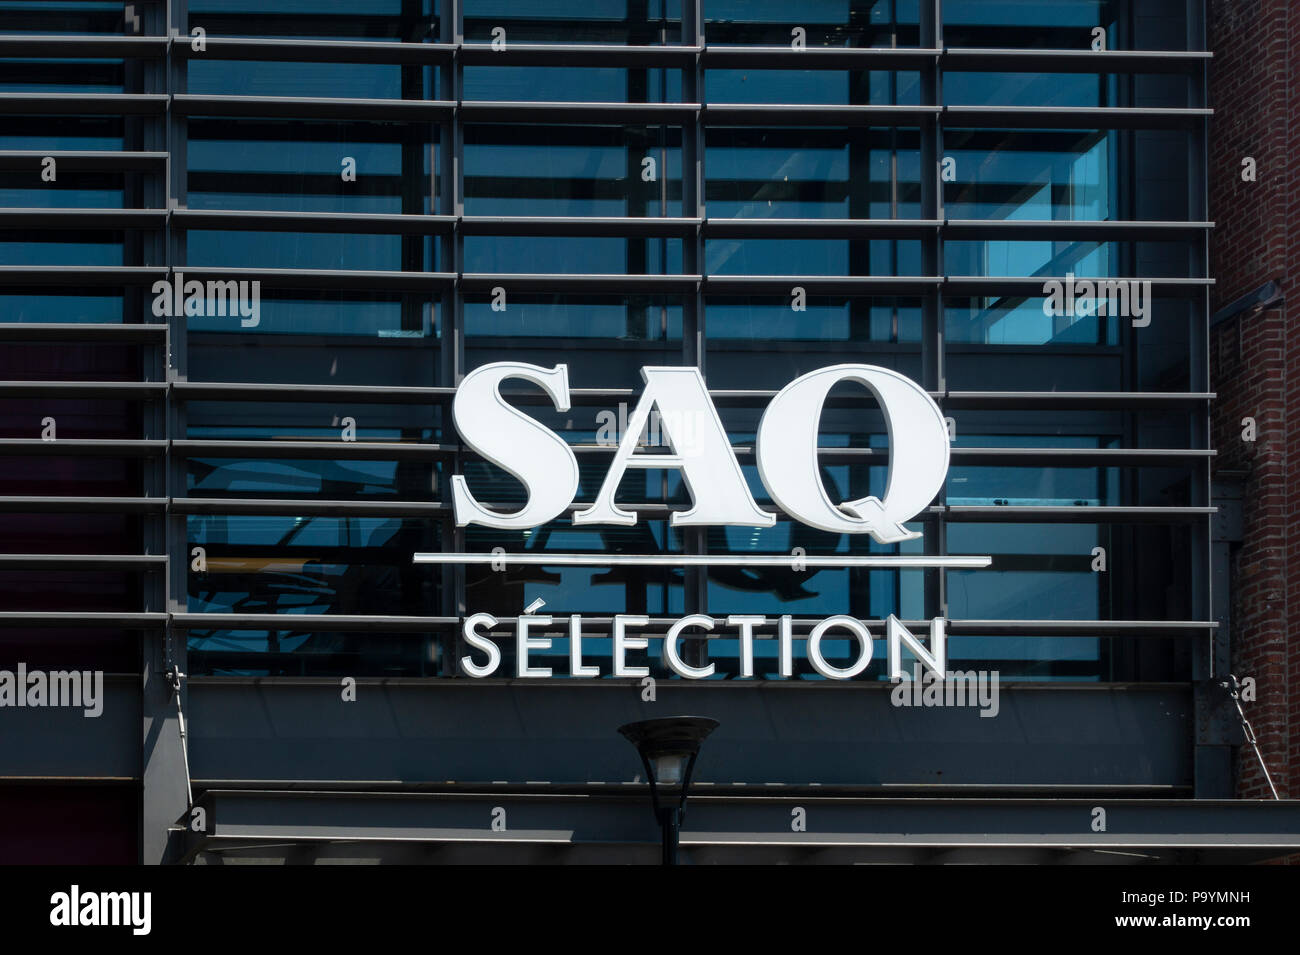 SAQ wines, a large retail store in Montreal, Quebec, Canada - Stock Image